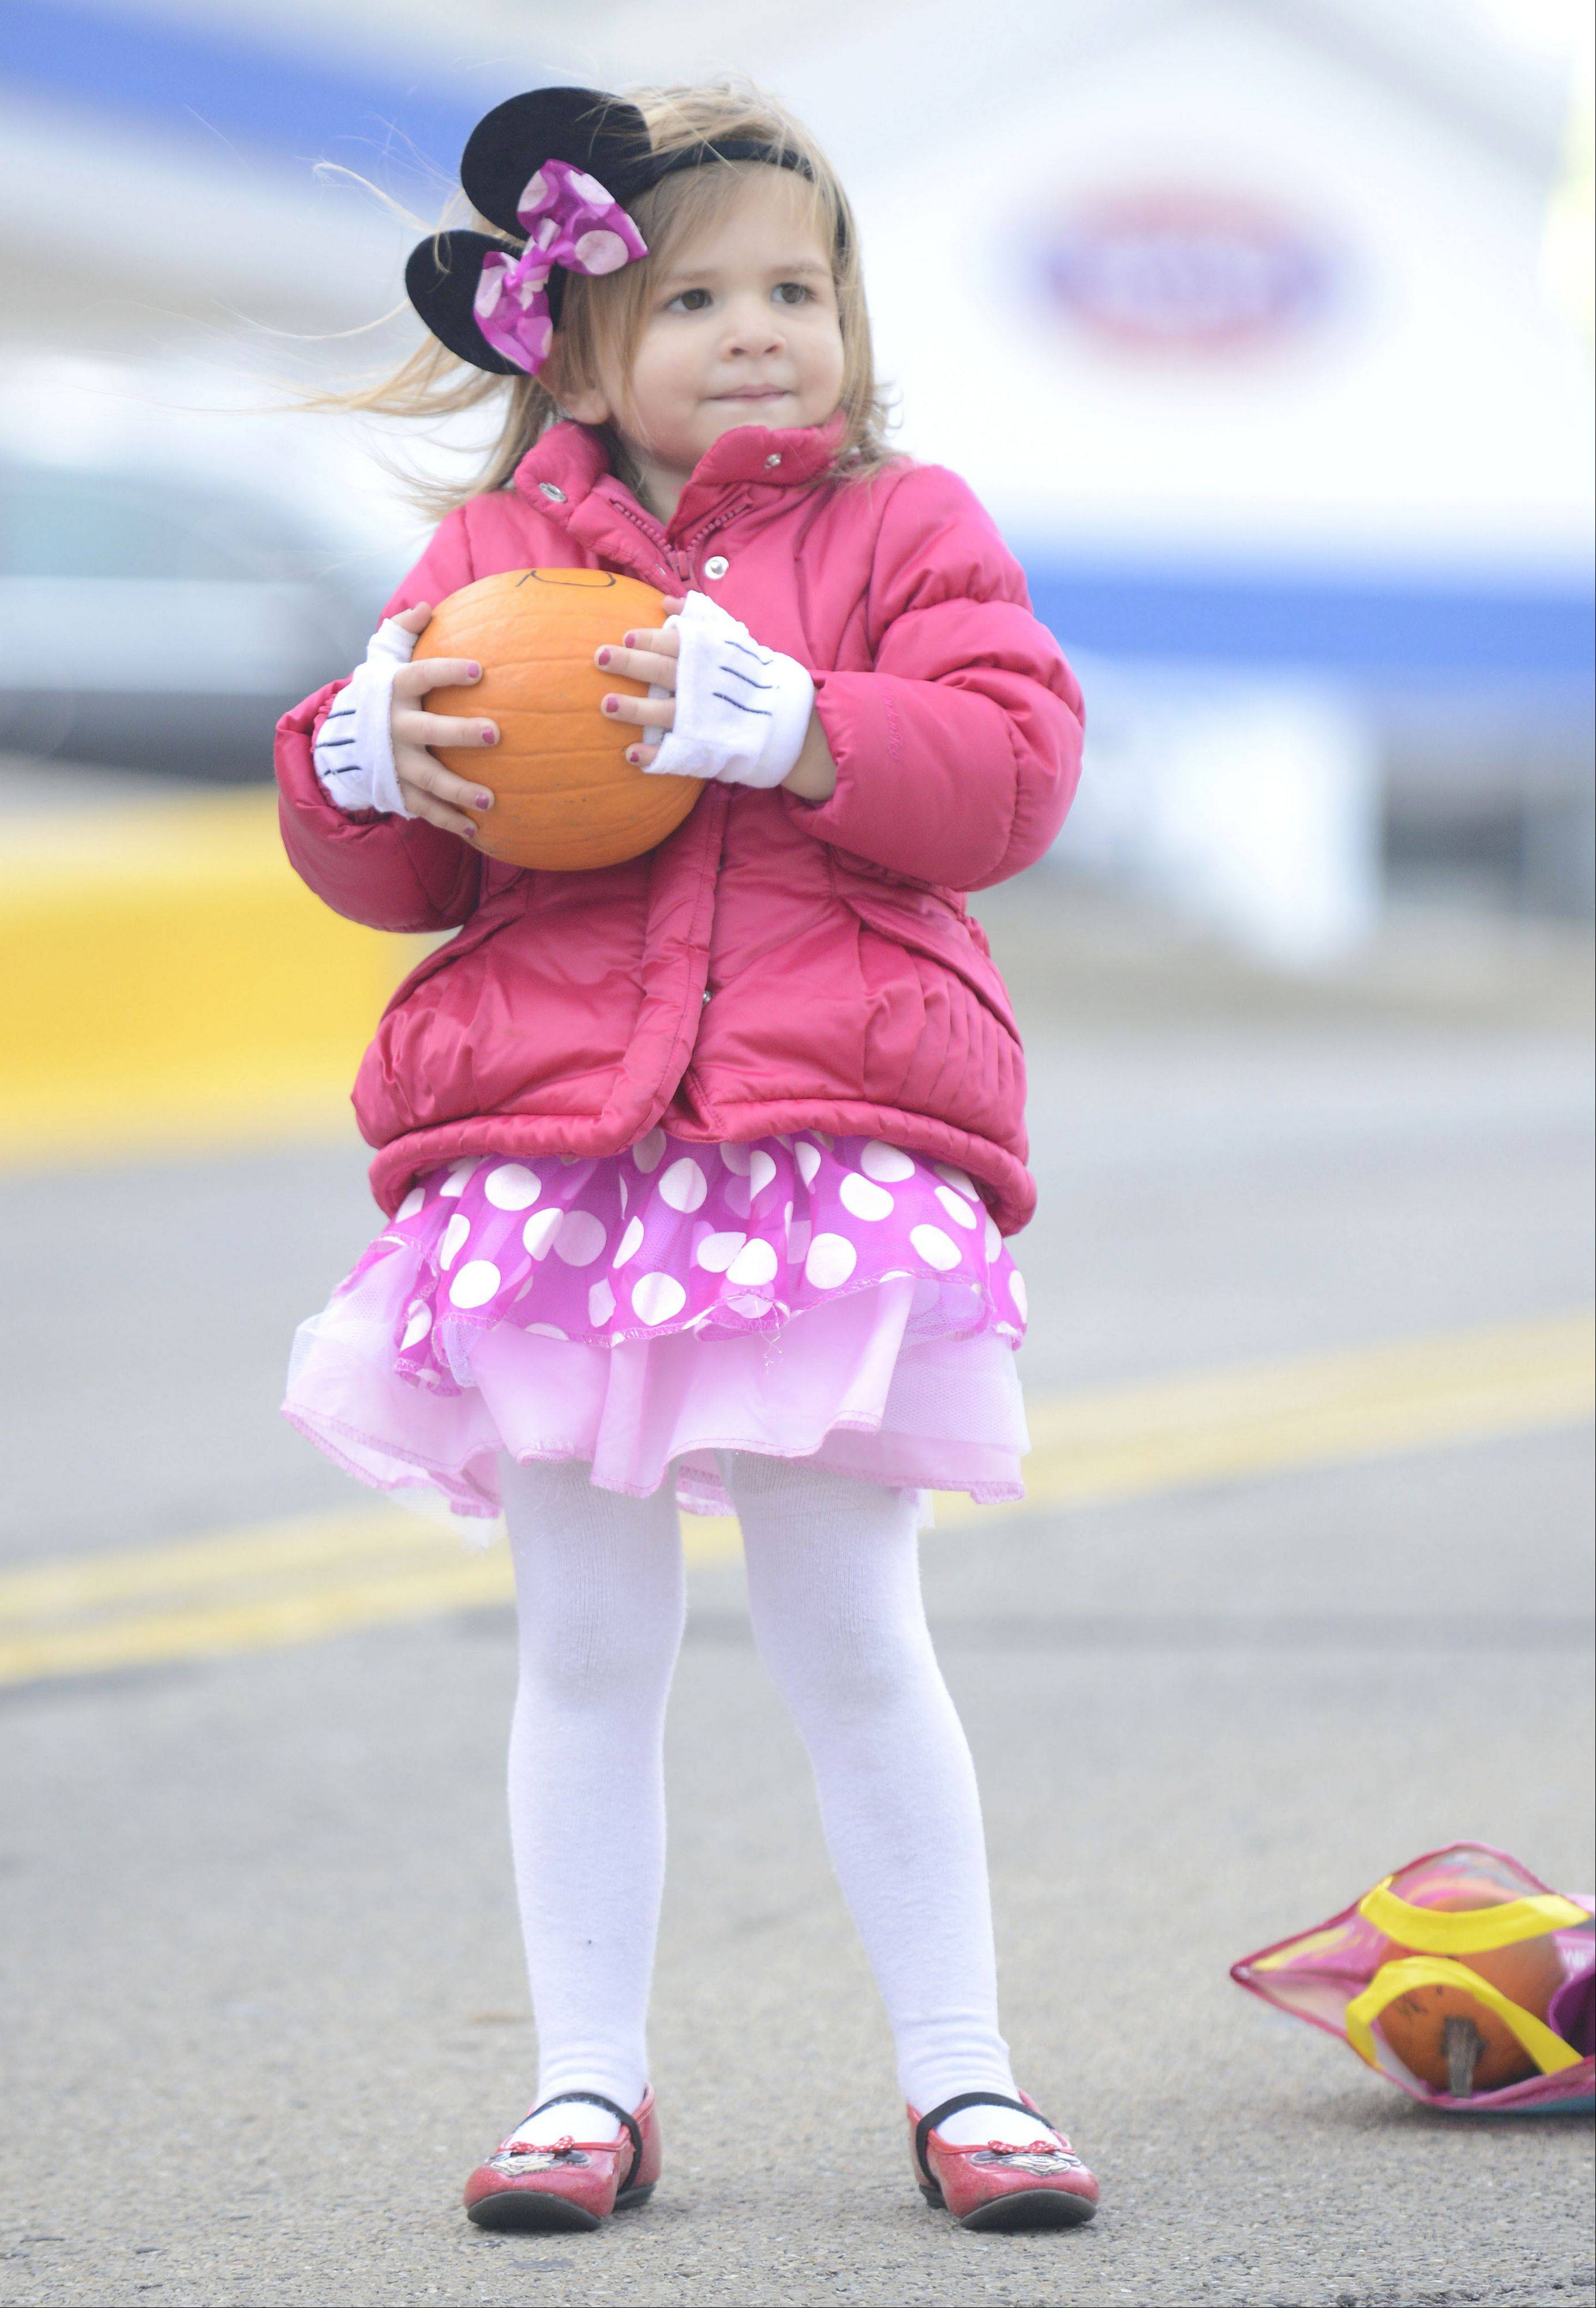 Sara Wolfe, 3, of Batavia, wore a Minnie Mouse costume to Batavia's BatFest, and is ready to roll her pumpkin down Houston Street in the Pumpkin Roll contest on Saturday. For $1 a roll, participants could see how far their pumpkin could roll down the hill without smashing. Pumpkins could be purchased from Boy Scout Troop 6 or participants could bring their own pumpkins. This is the first year Sara has been at the festival.